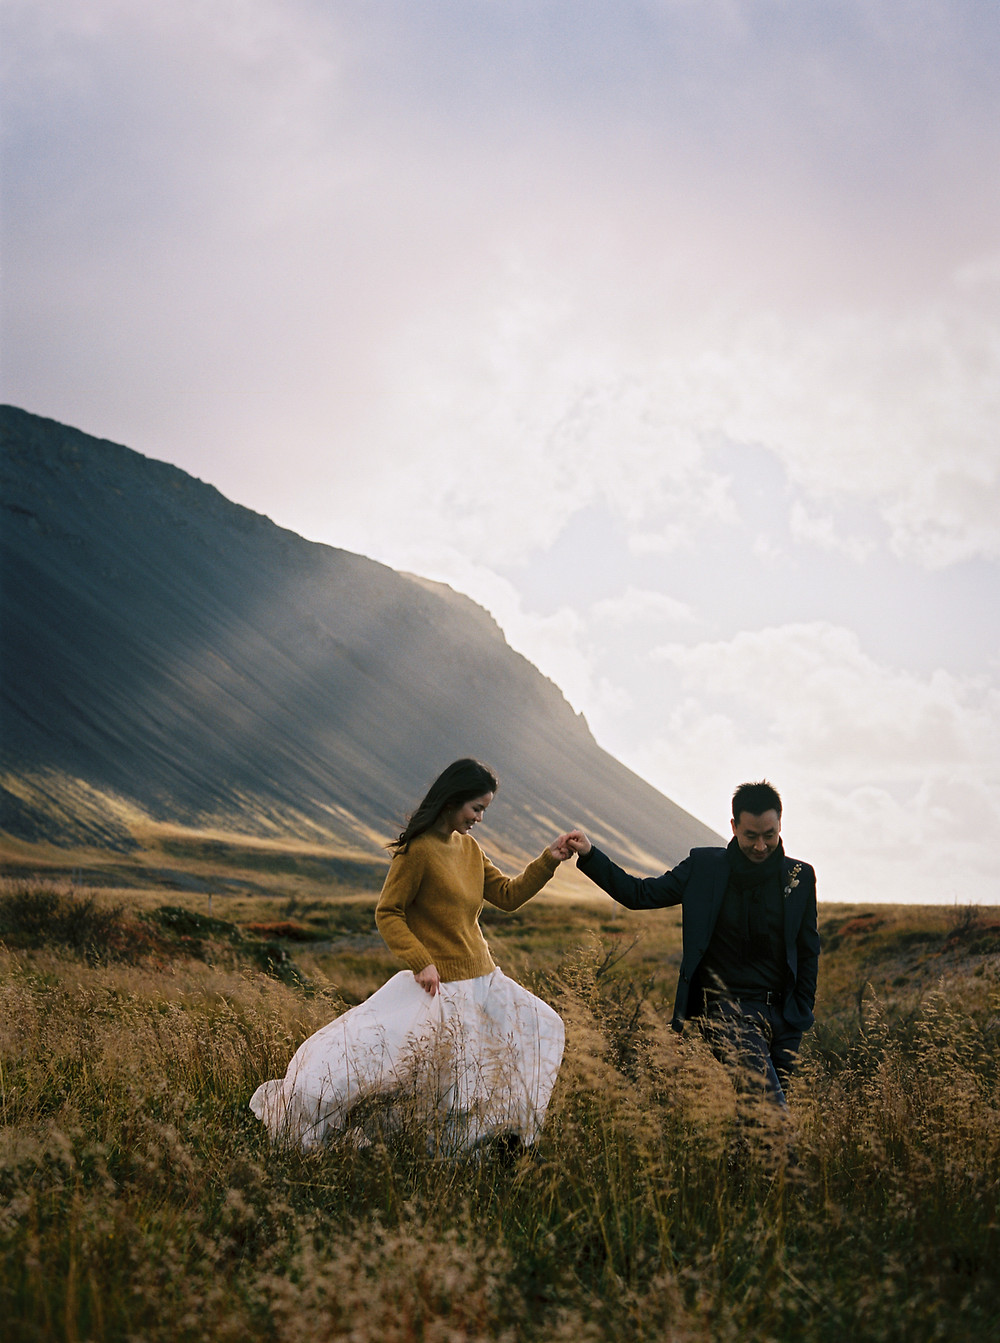 Cosy fall wedding in Iceland / Wedding couple in front of Icelandic mountain landscape / Intimate Iceland elopement